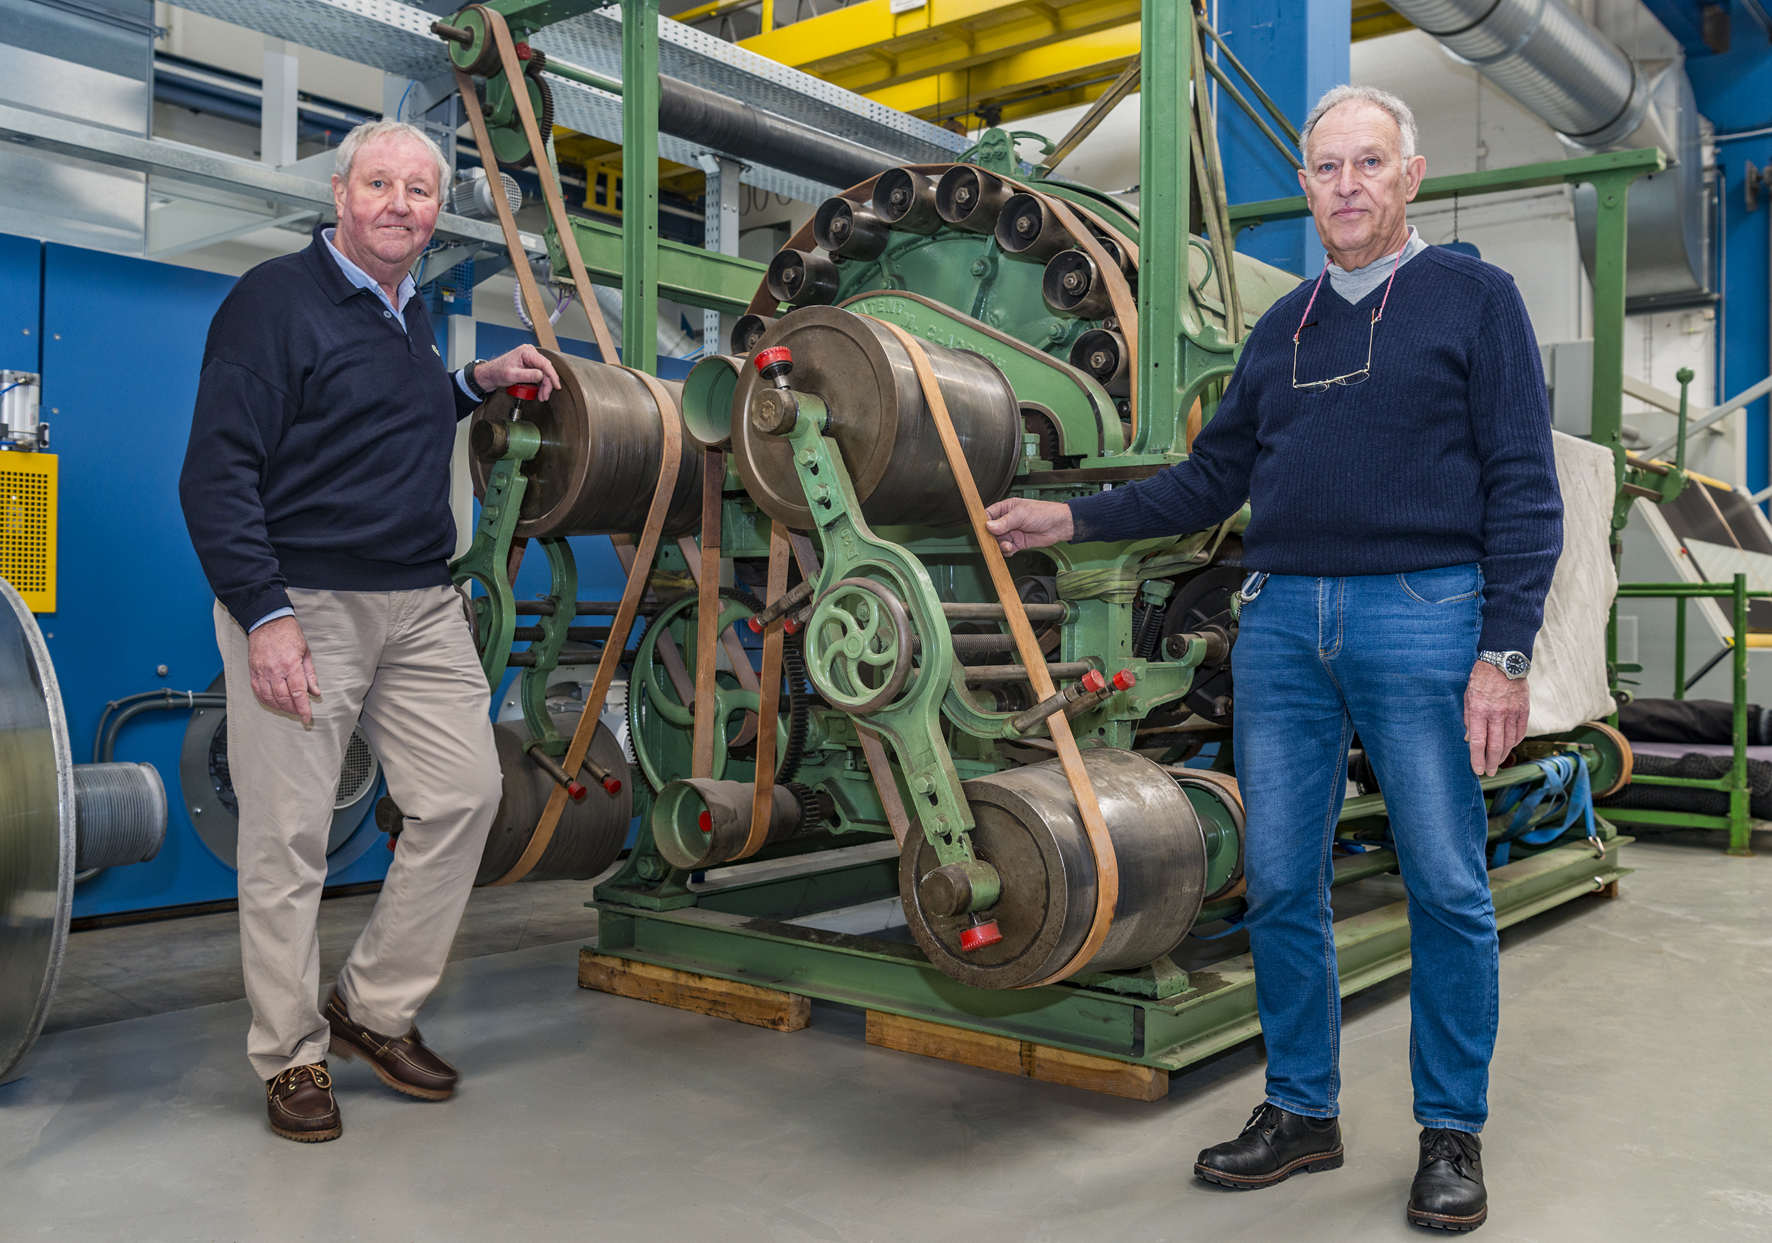 Fred Vohsdahl (left) and Walter Dresen with the103-year-old Monforts machine. © Monforts.